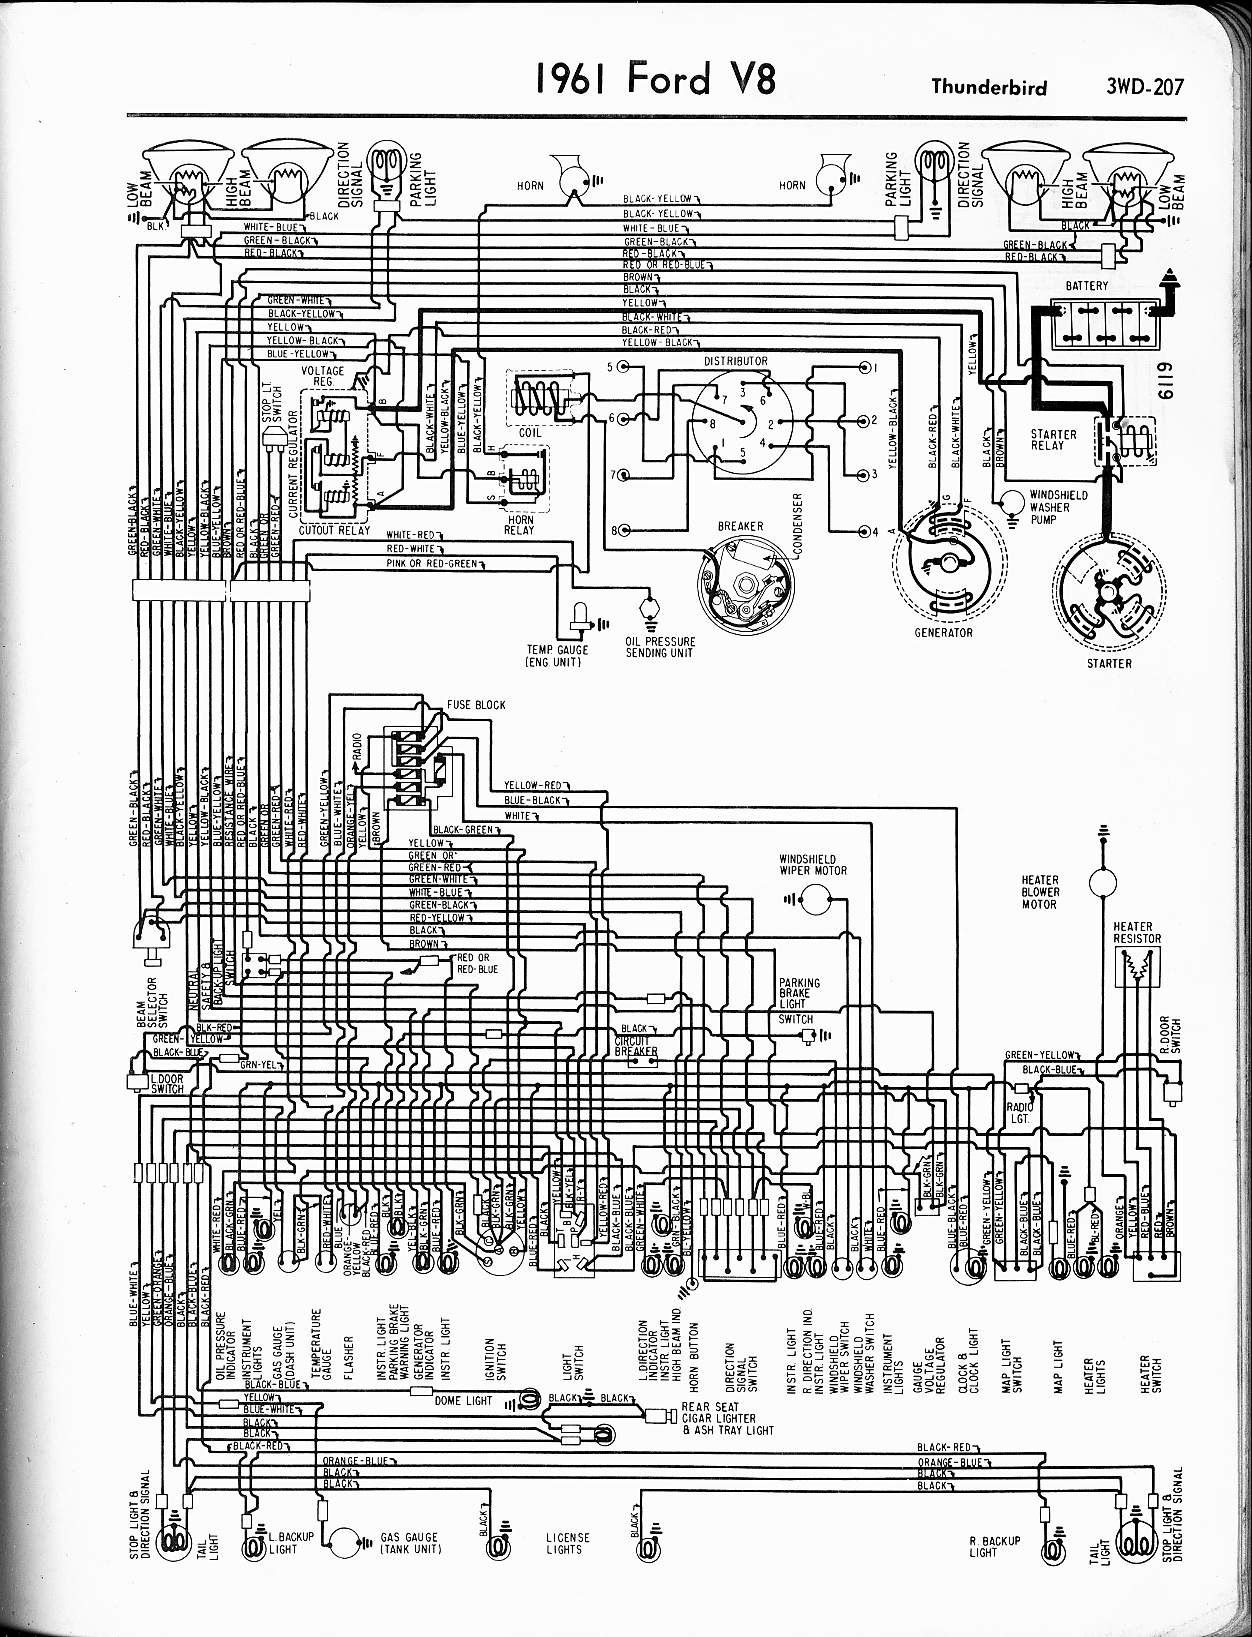 MWire5765 207 57 65 ford wiring diagrams 2002 F250 Wiring Diagram at gsmx.co